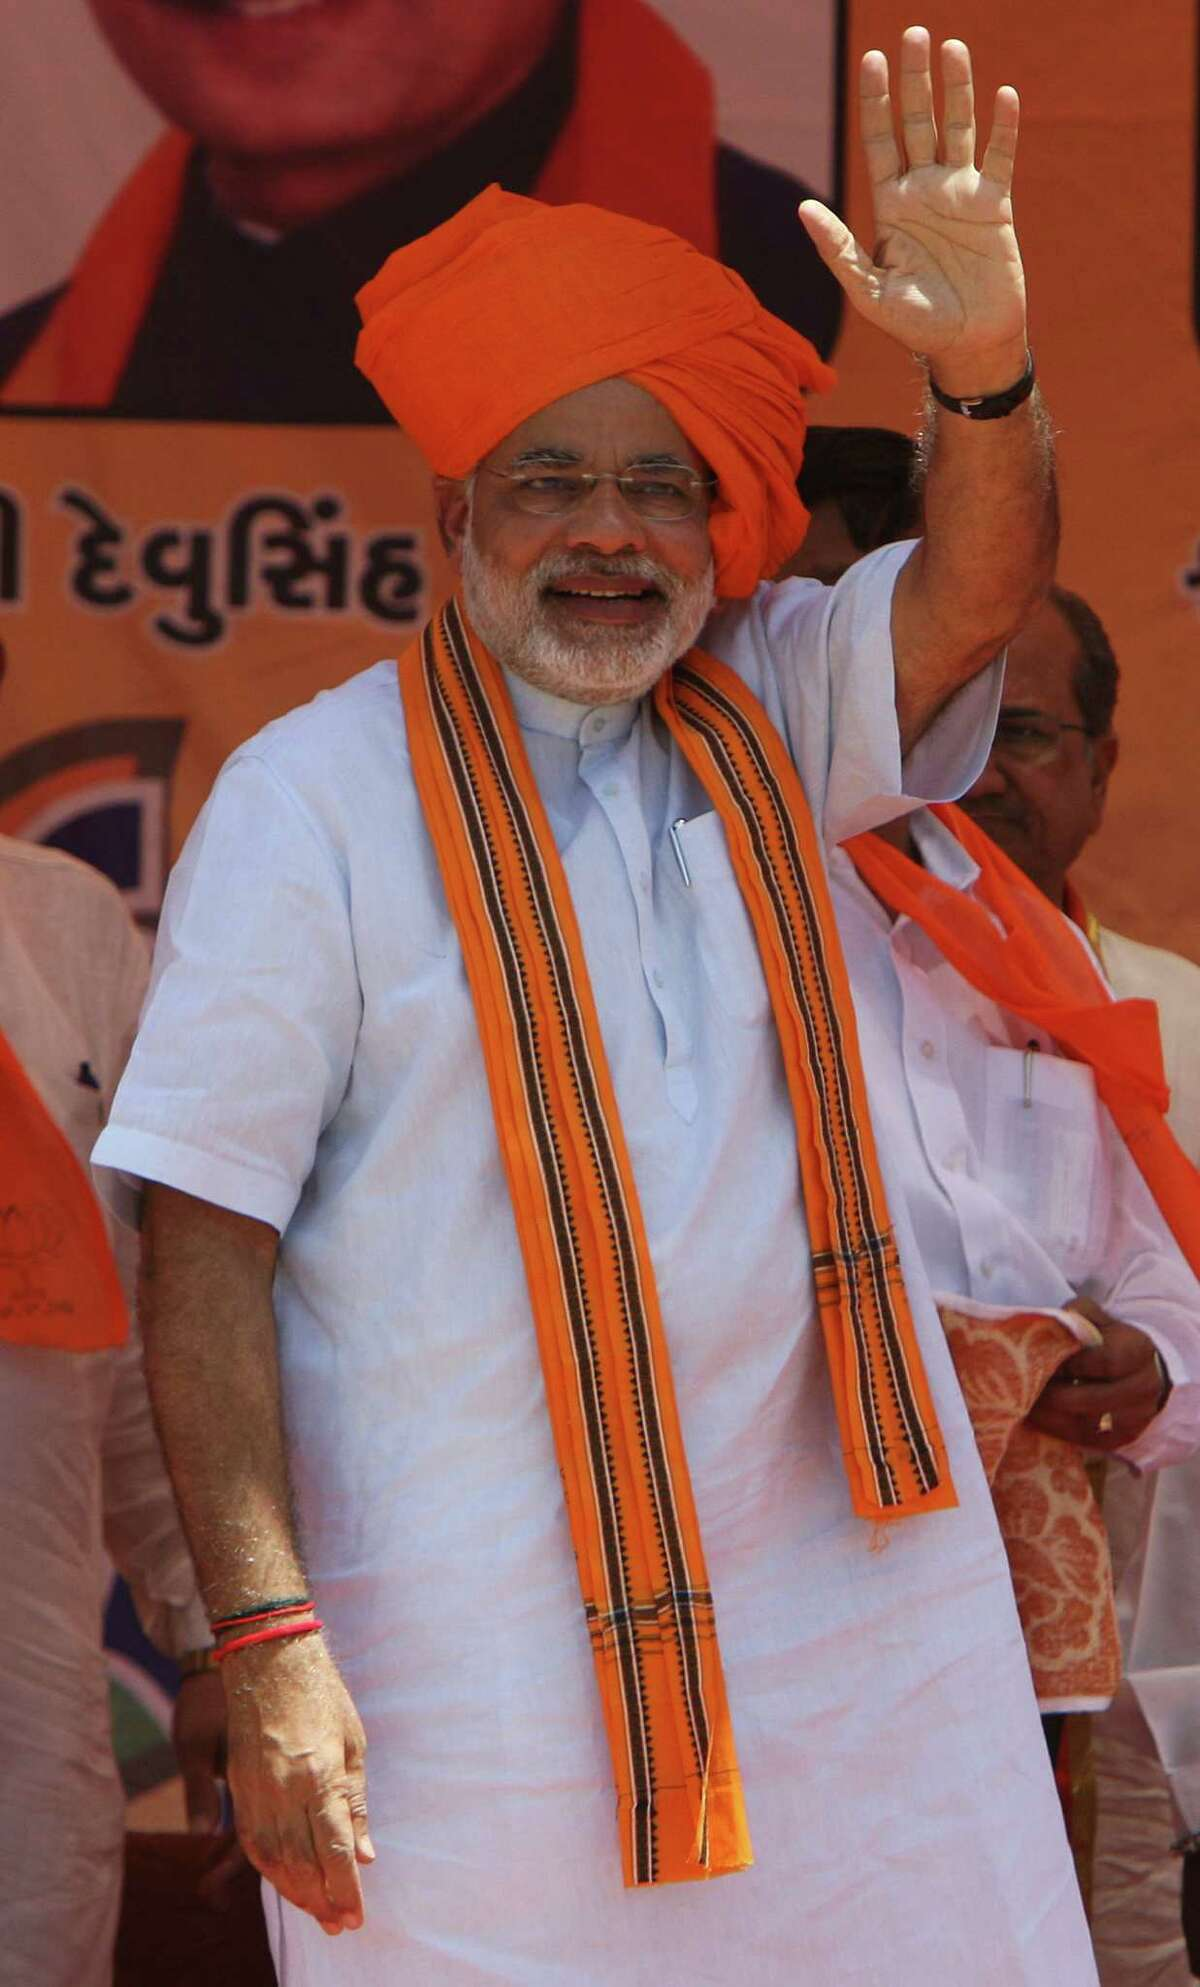 He has worn a unique garment so often that it is now officially named after him (the Modi Kurta, a revisionist version of the classic Indian tunic shirt with half-length sleeves)